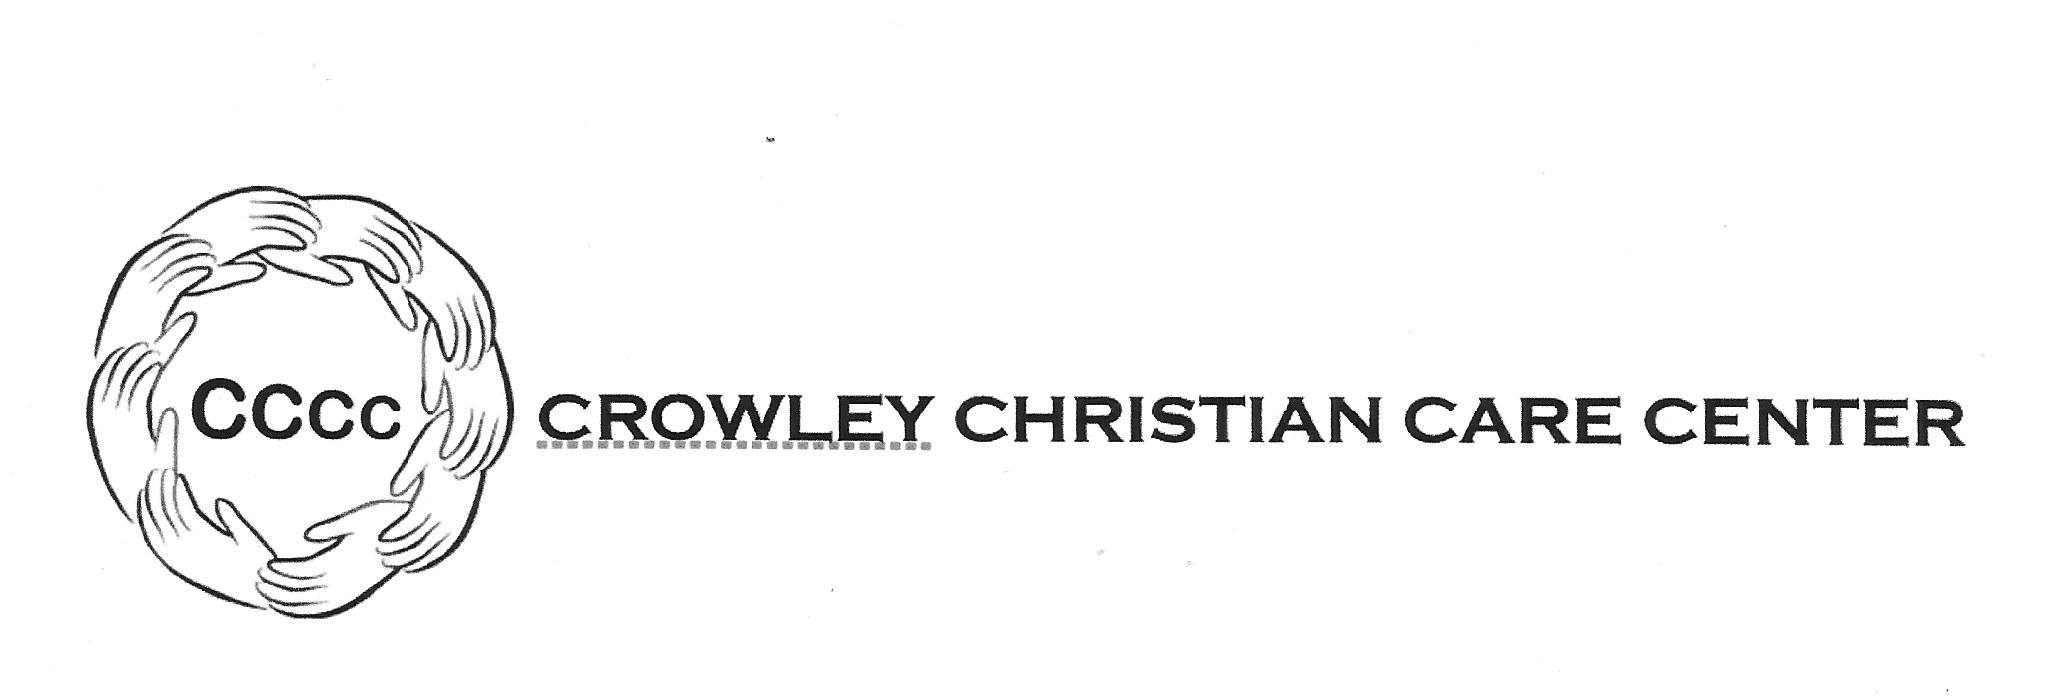 Crowley Christian Care Center